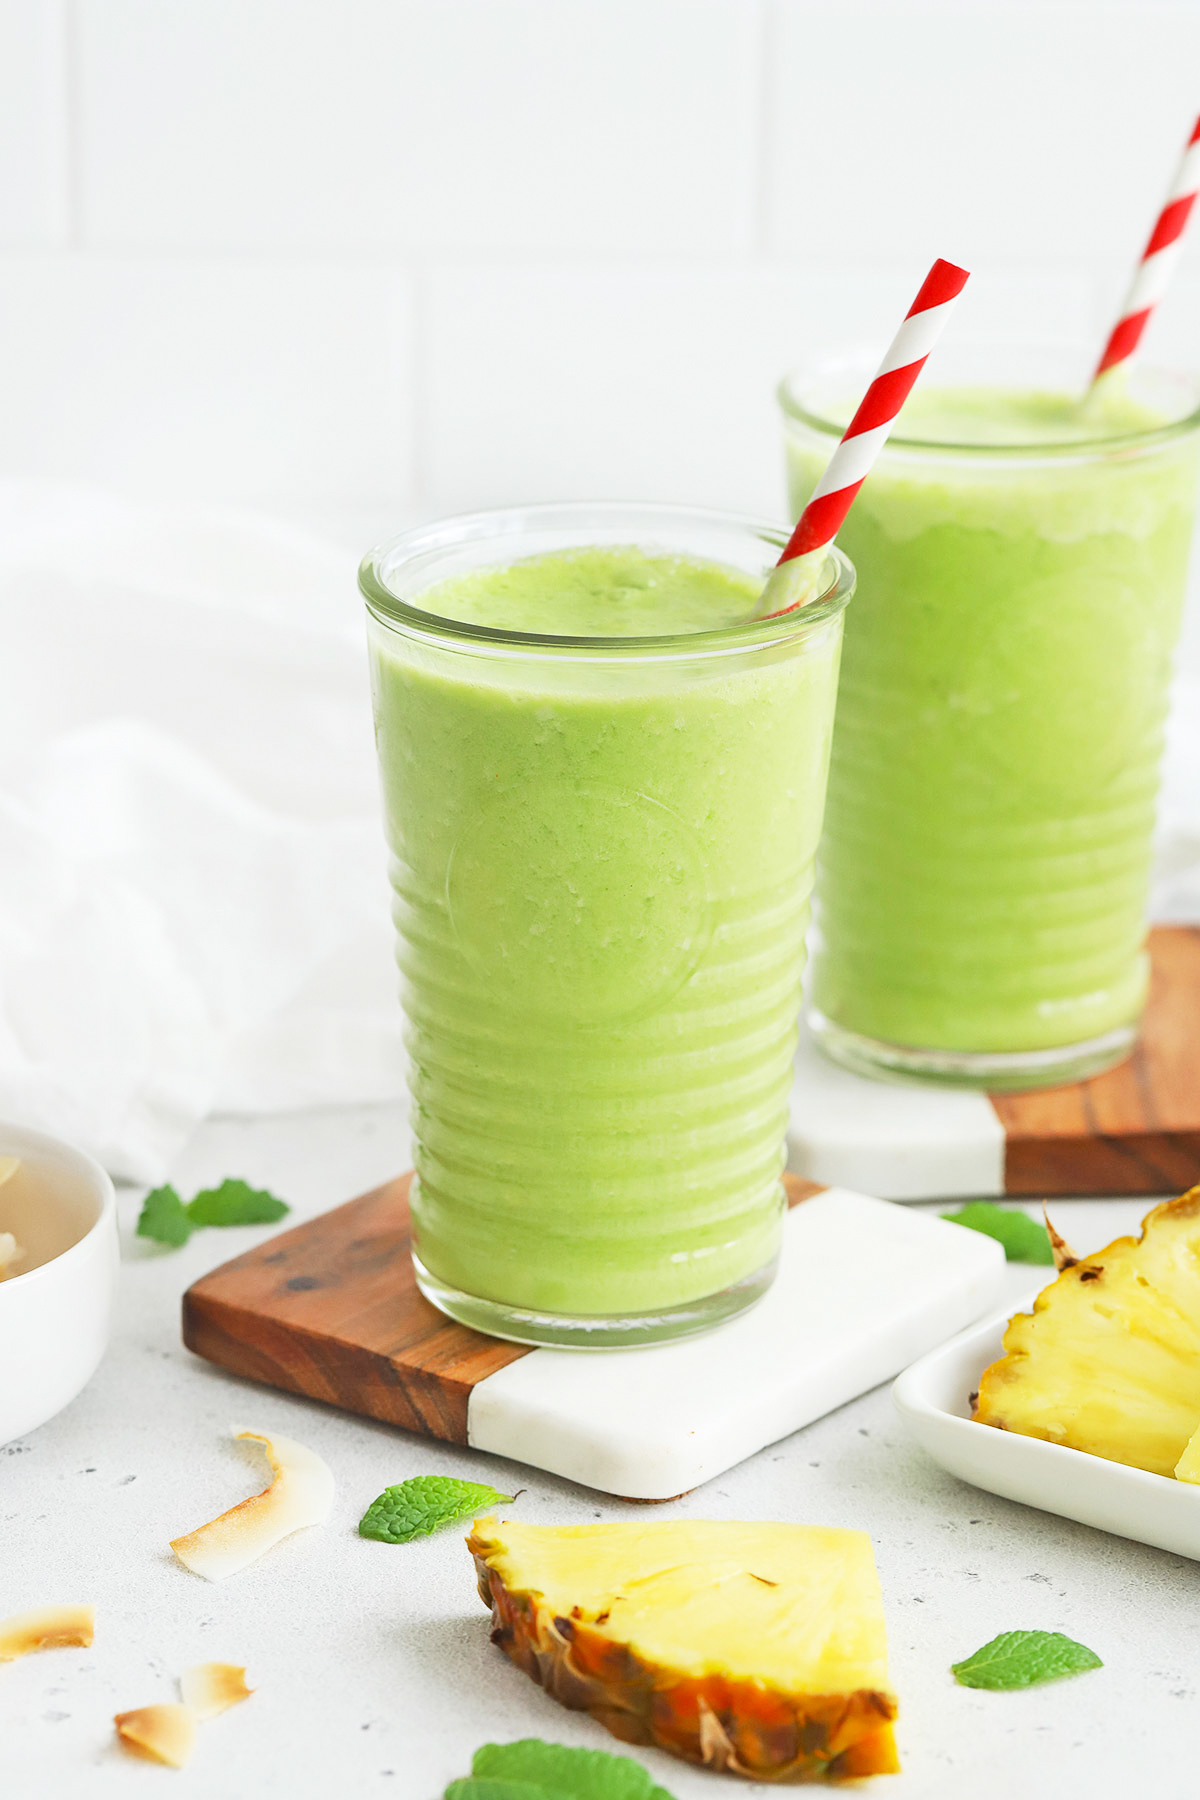 Front view of glasses of pineapple mint smoothie with red striped straws